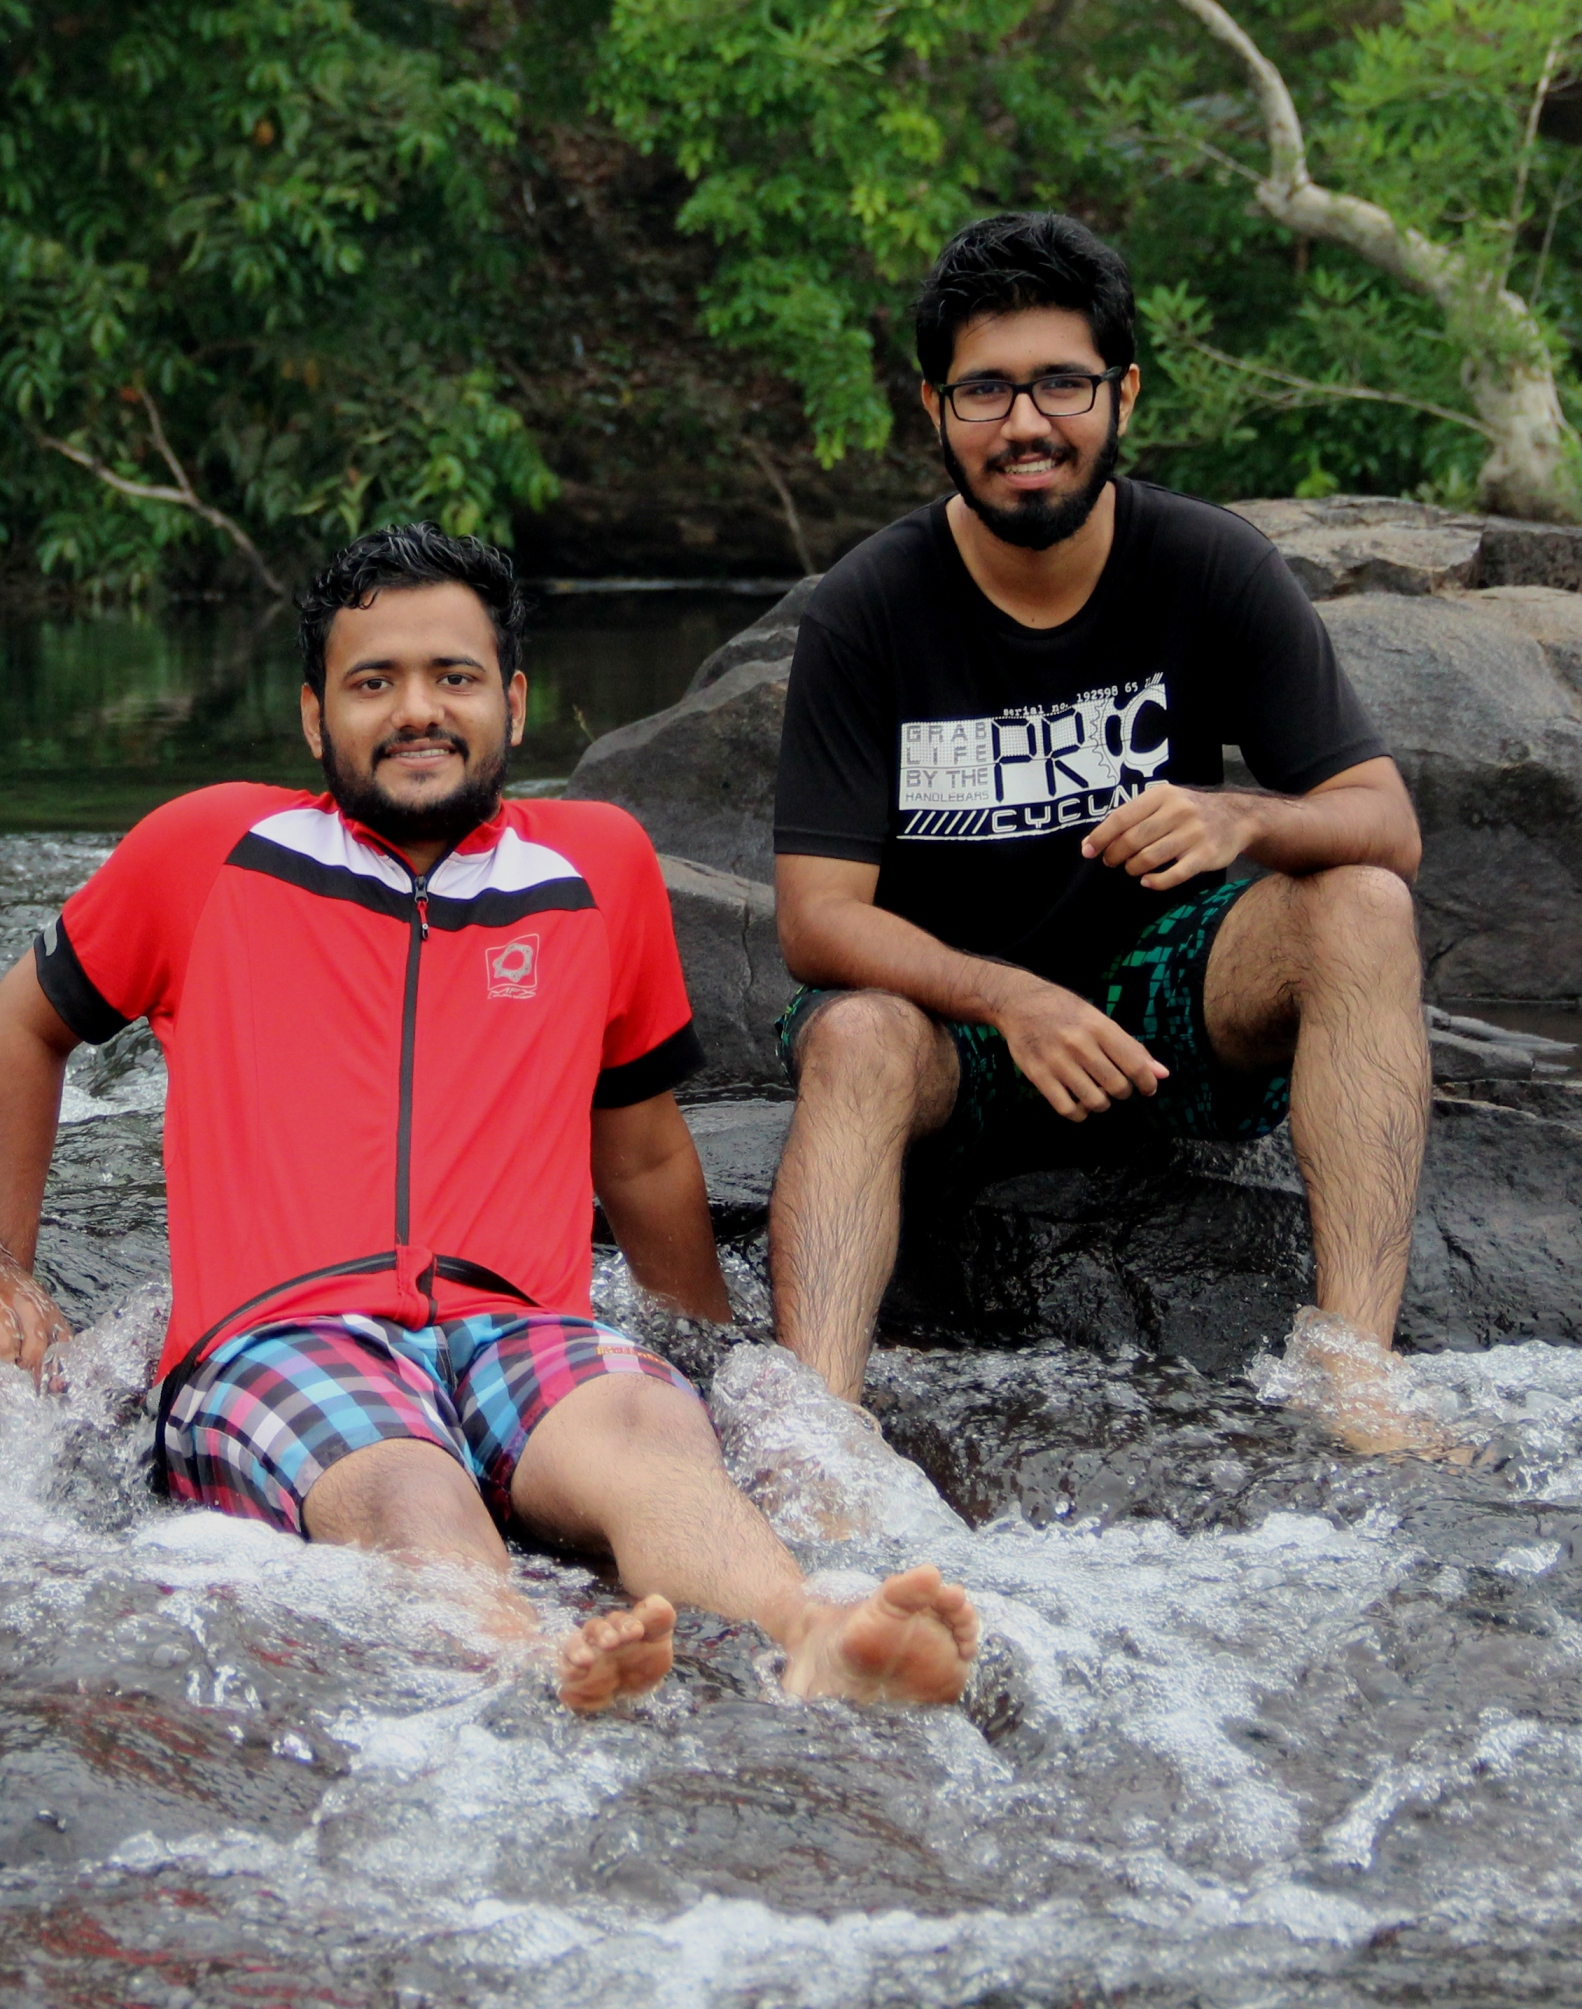 Me and my friend Viraj Nayak enjoying the Natural River Jacuzzi - One can sit here for hours.